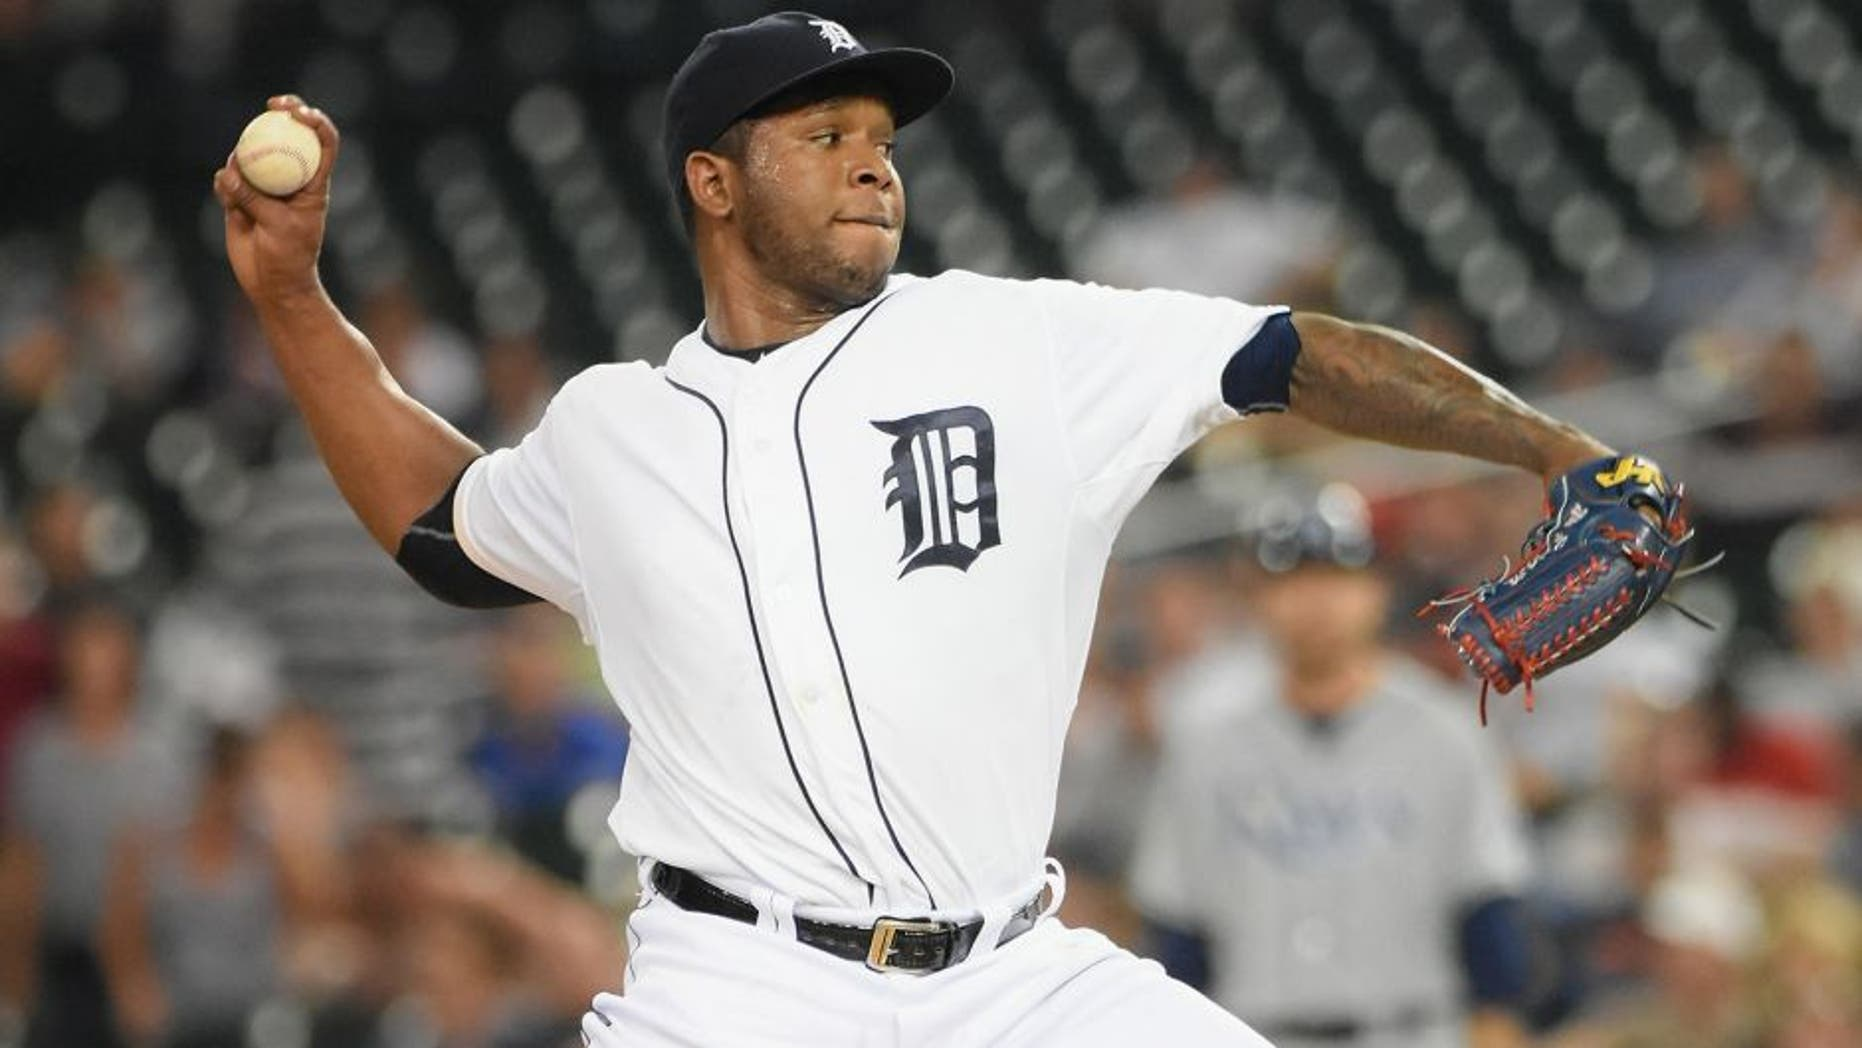 DETROIT, MI - SEPTEMBER 08: Neftali Feliz #39 of the Detroit Tigers pitches during the game against the Tampa Bay Rays at Comerica Park on September 8, 2015 in Detroit, Michigan. The Tigers defeated the Rays 8-7. (Photo by Mark Cunningham/MLB Photos via Getty Images)